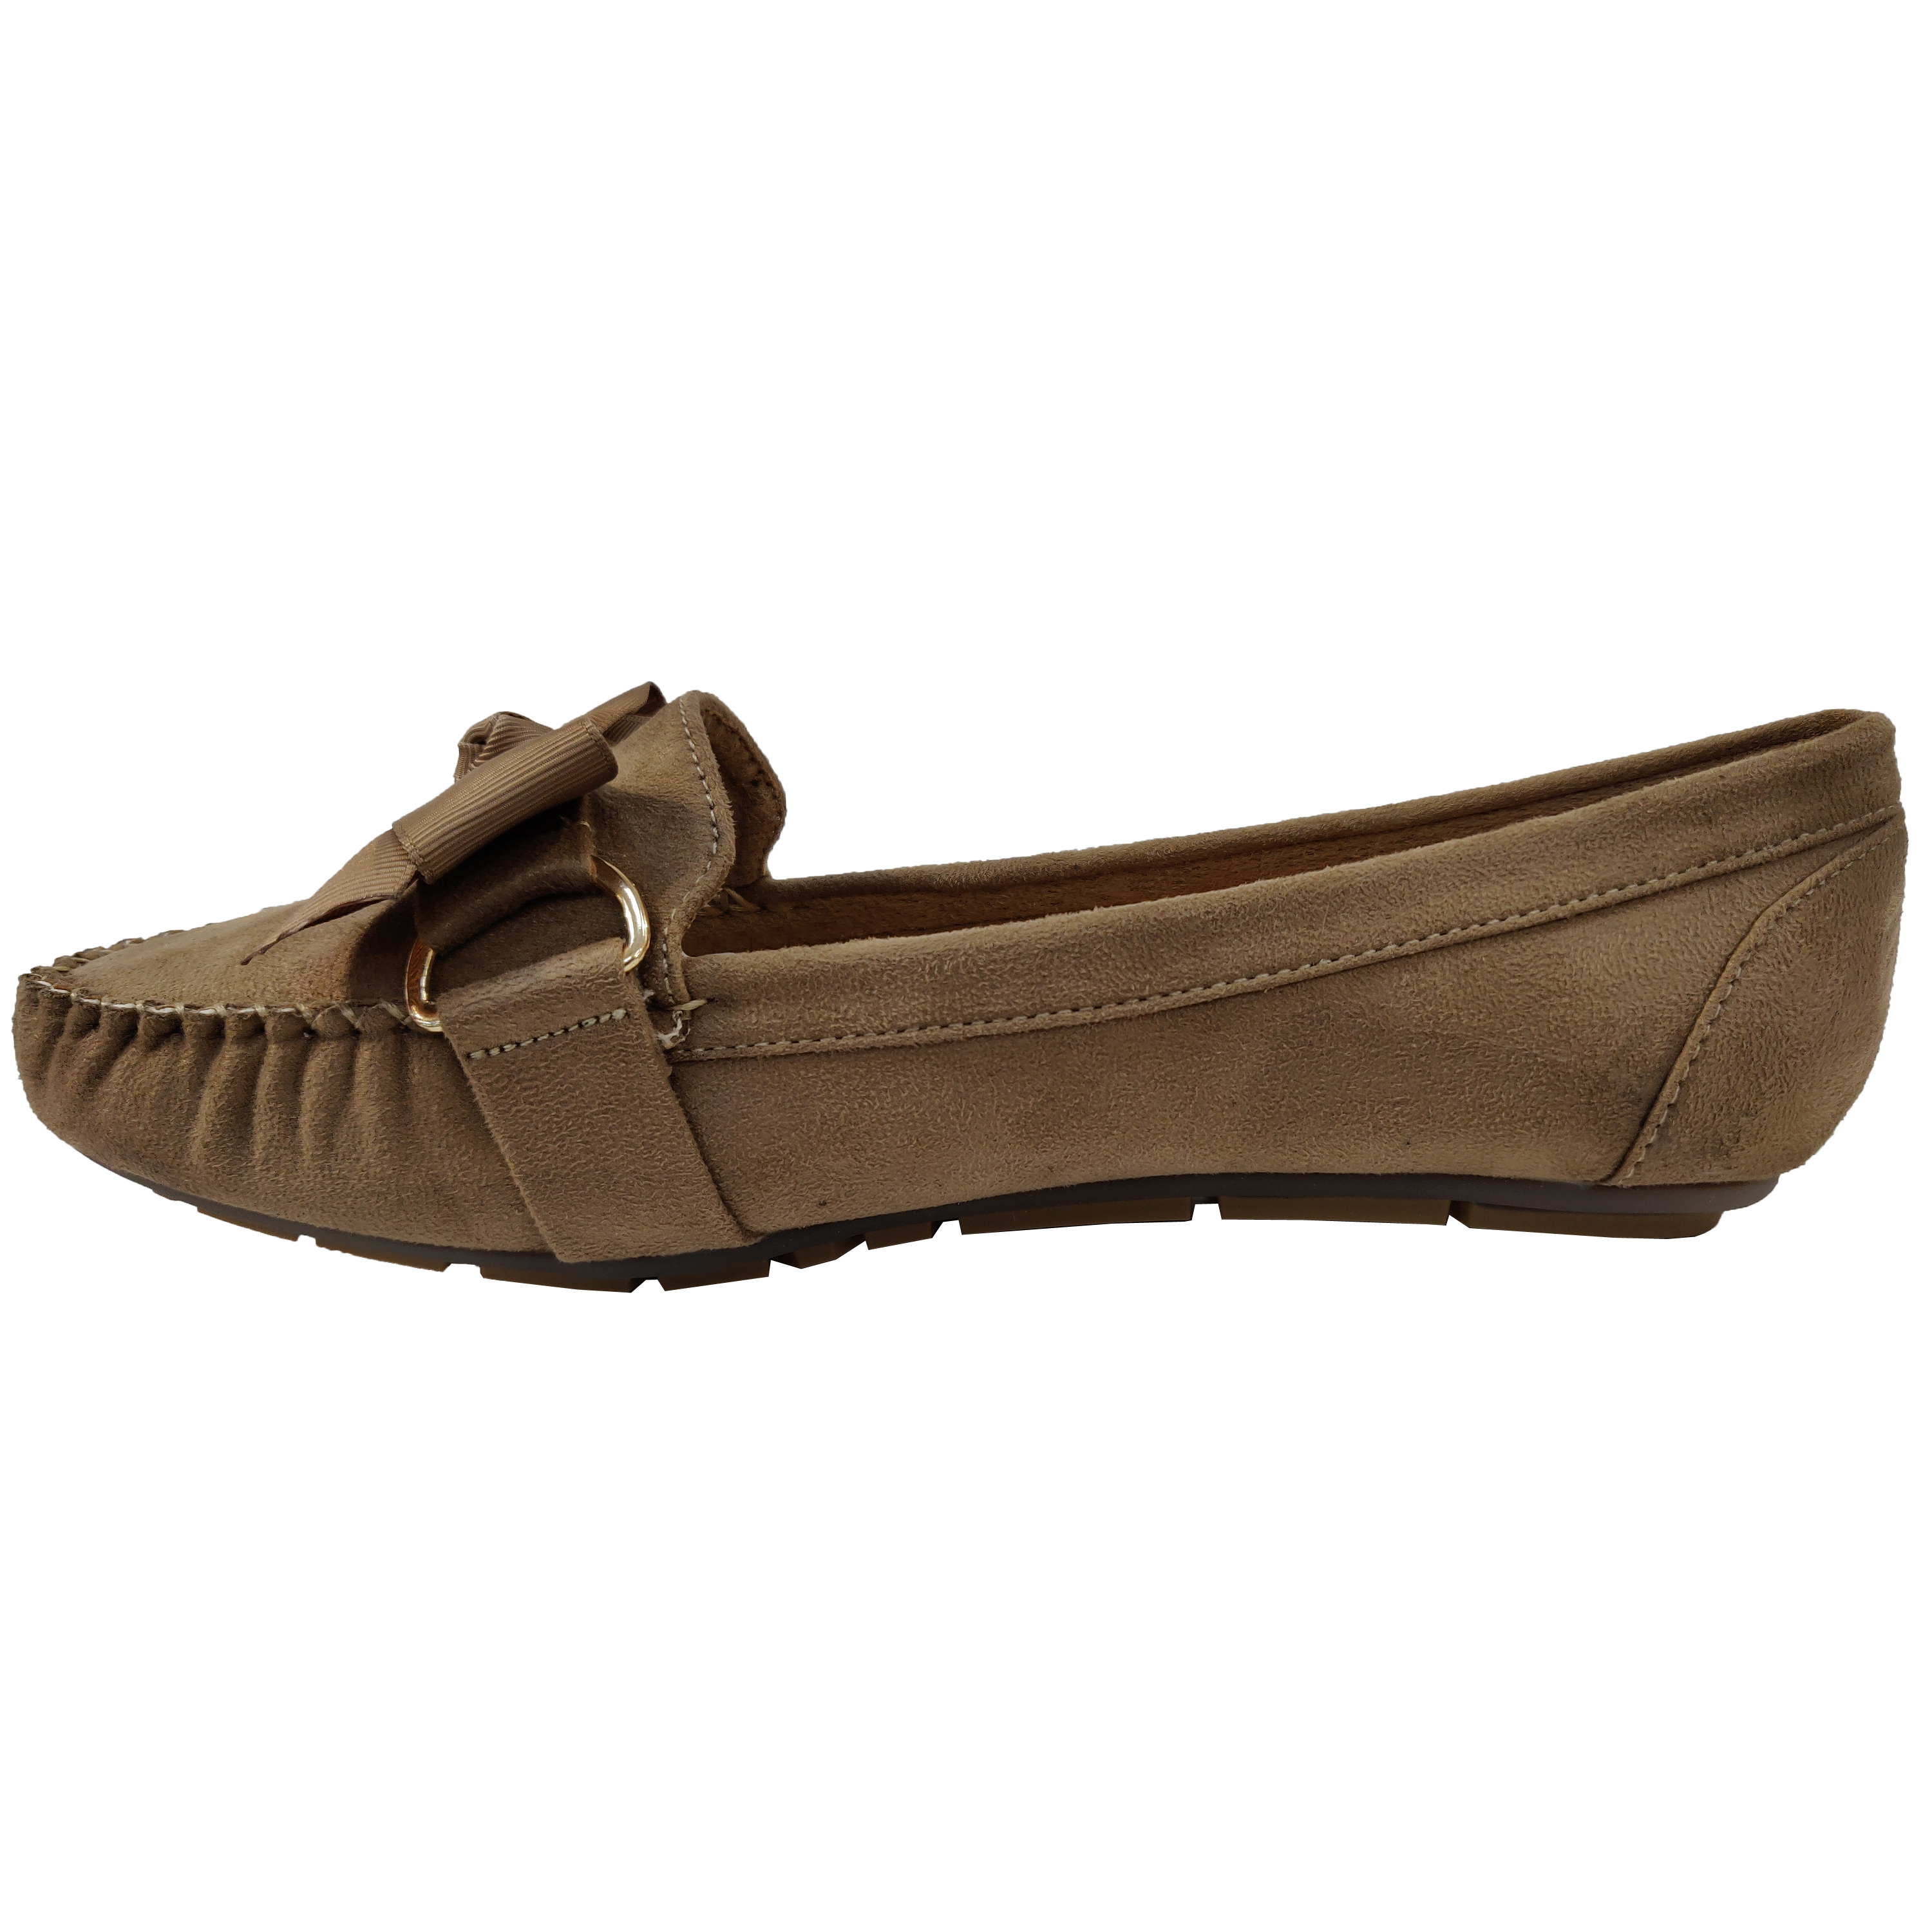 Ladies-Slip-On-Ballerina-Womens-Suede-Look-Pumps-Flat-Bow-Tassels-Shoes-Fashion thumbnail 9